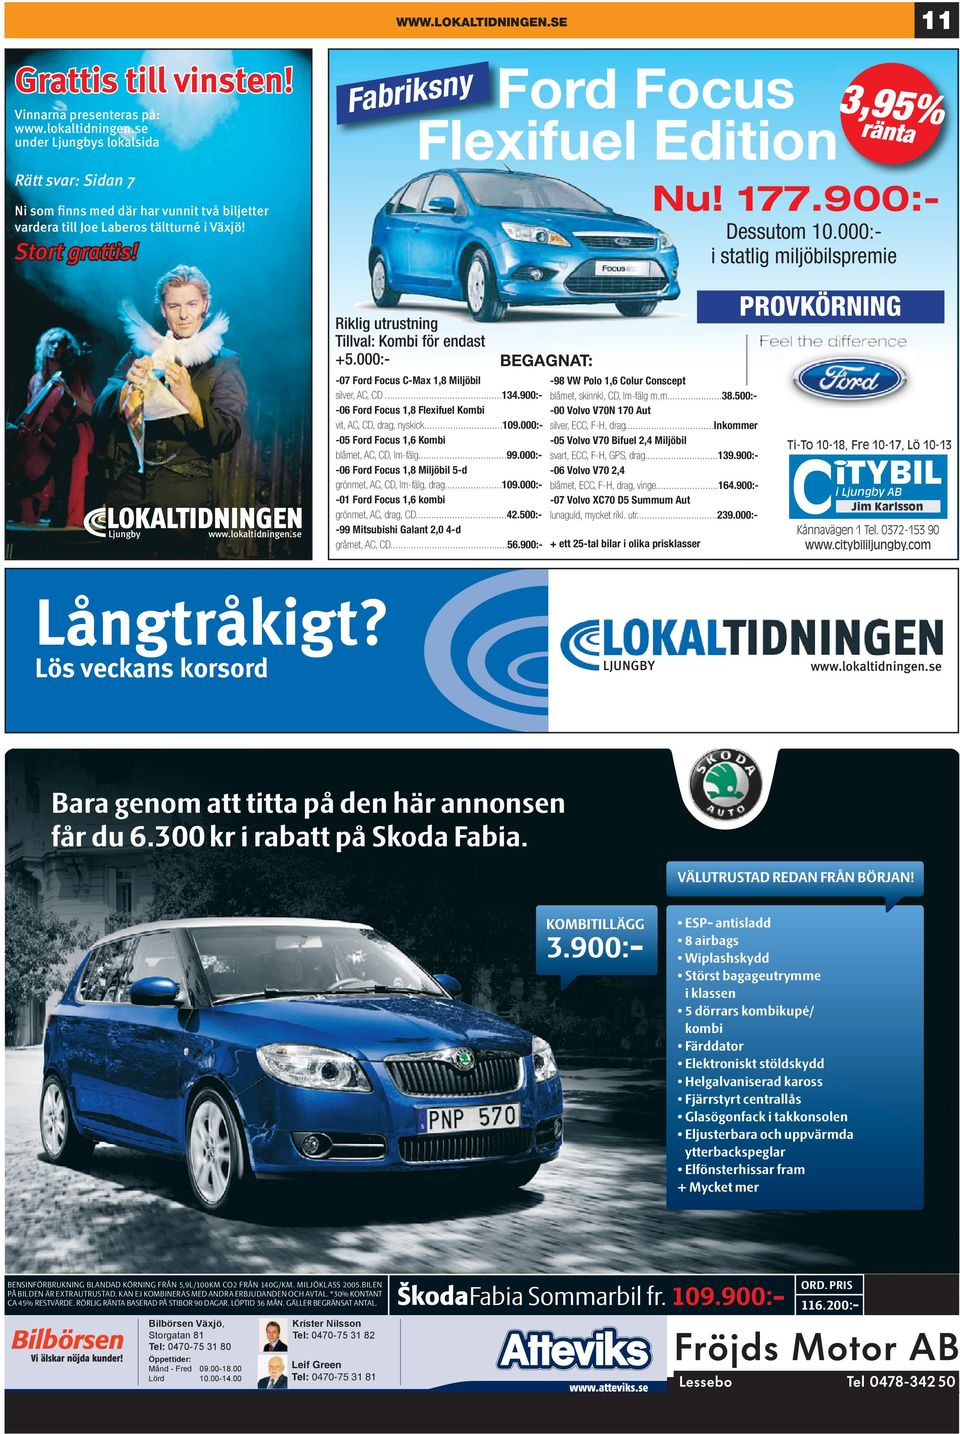 000:- BEGAGNAT: -0 Ford Focus C-Max, Miljöbil silver, AC, CD...00:- -0 Ford Focus, Flexifuel Kombi vit, AC, CD, drag, nyskick...0.000:- -0 Ford Focus, Kombi blåmet, AC, CD, lm-fälg.